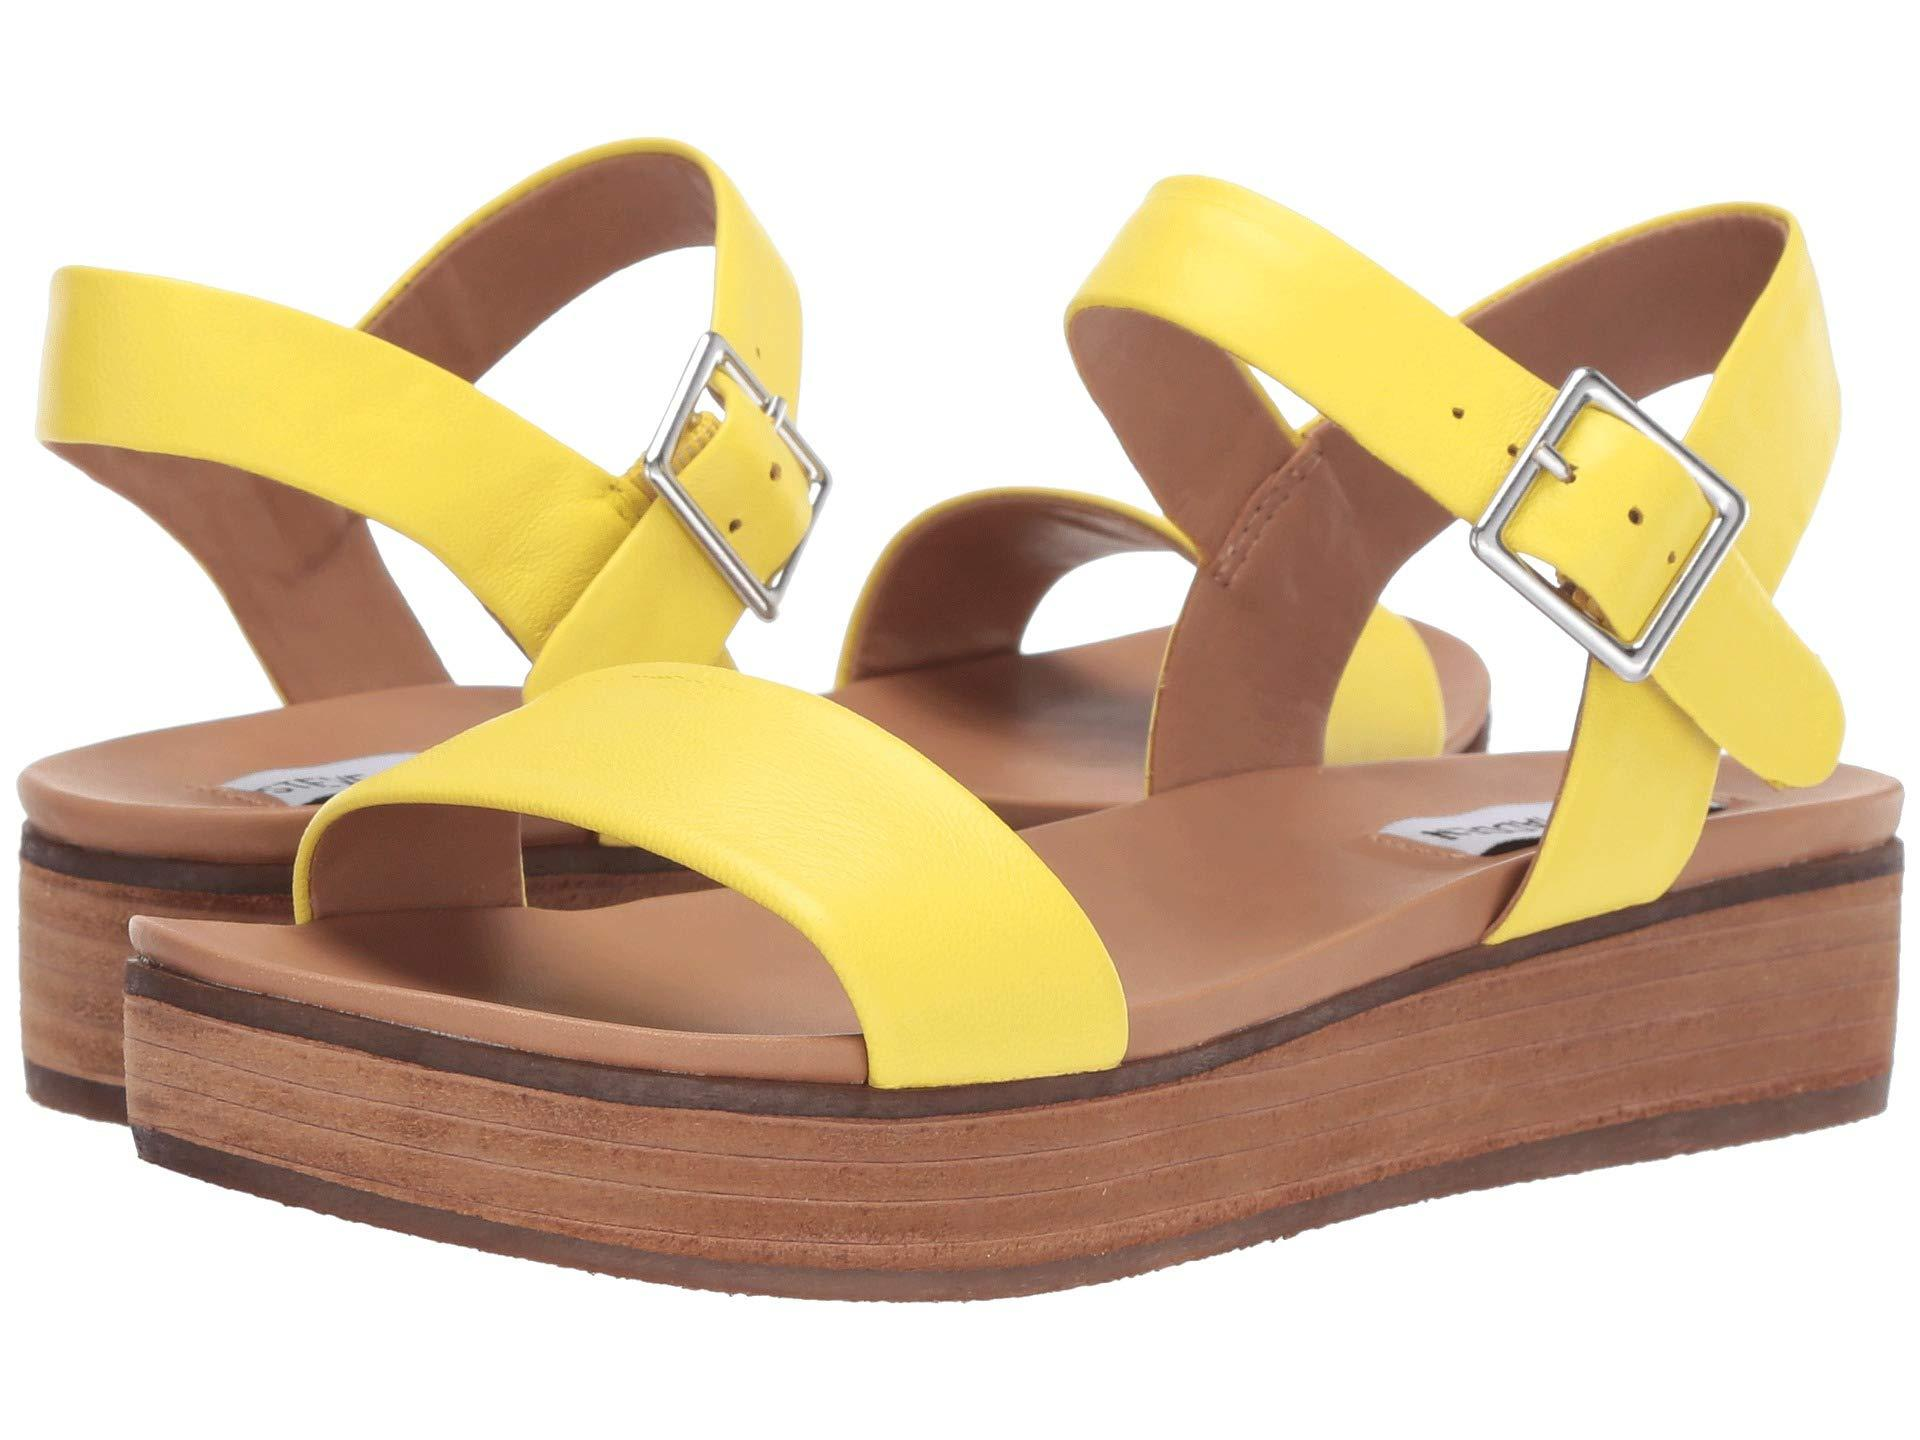 06a346b41a8 Lyst - Steve Madden Aida (natural Snake) Women s Shoes in Yellow